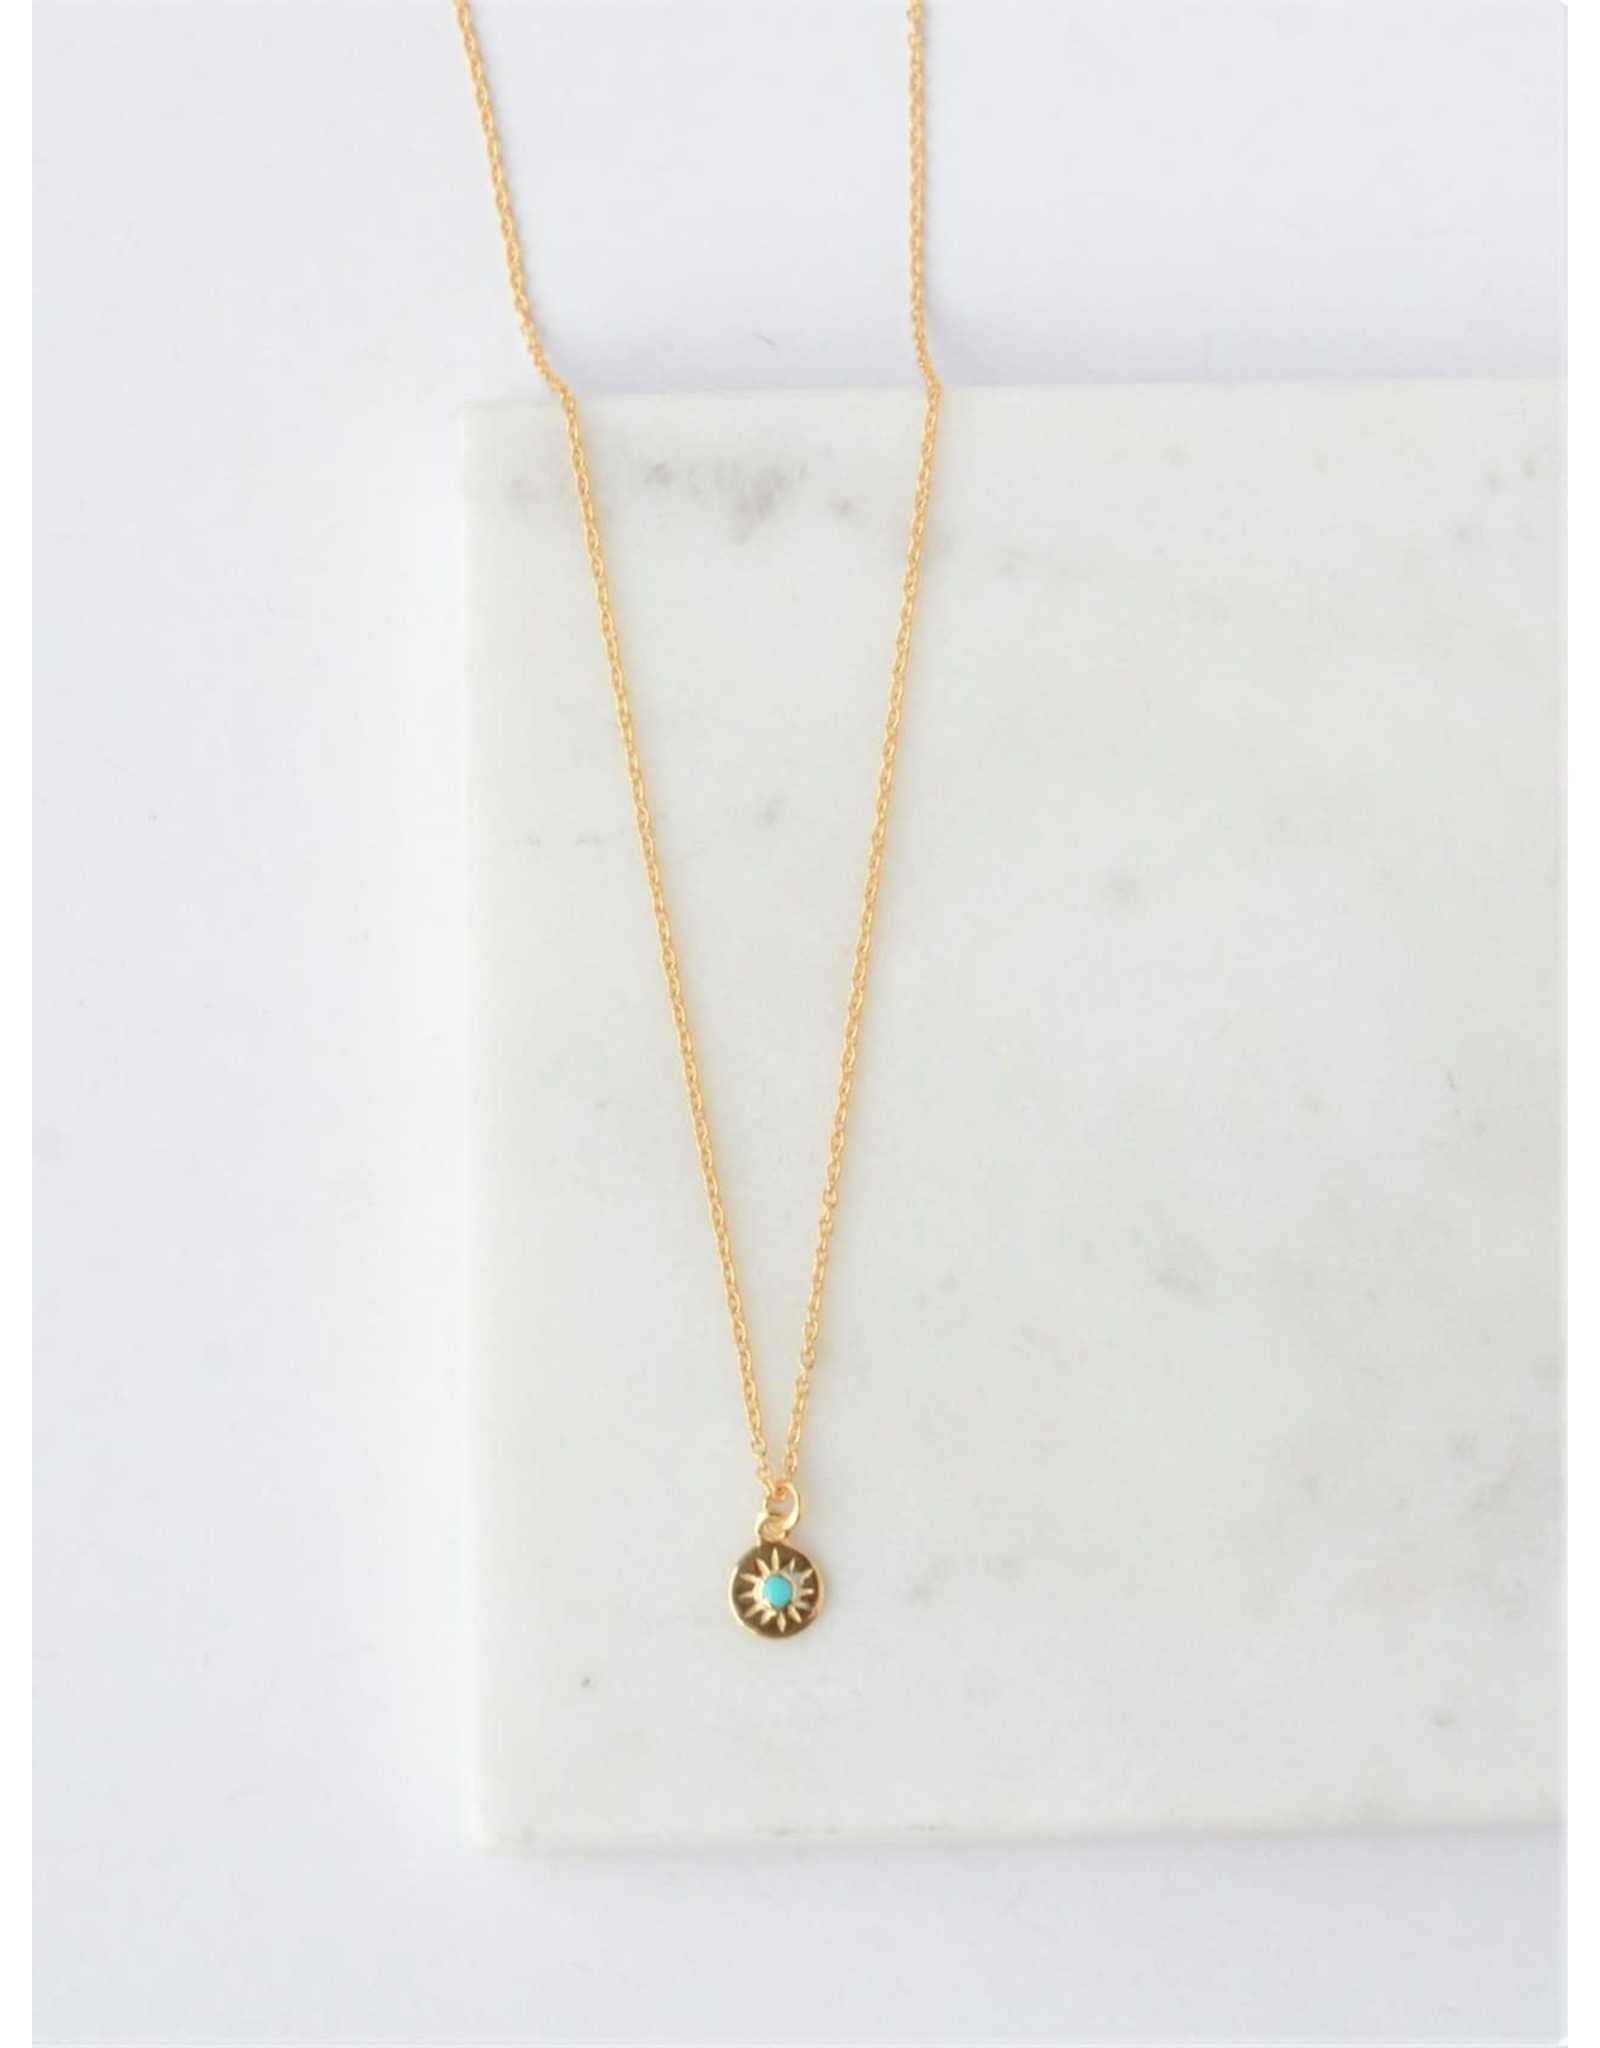 Starburst Turquoise 14kt gold Necklace